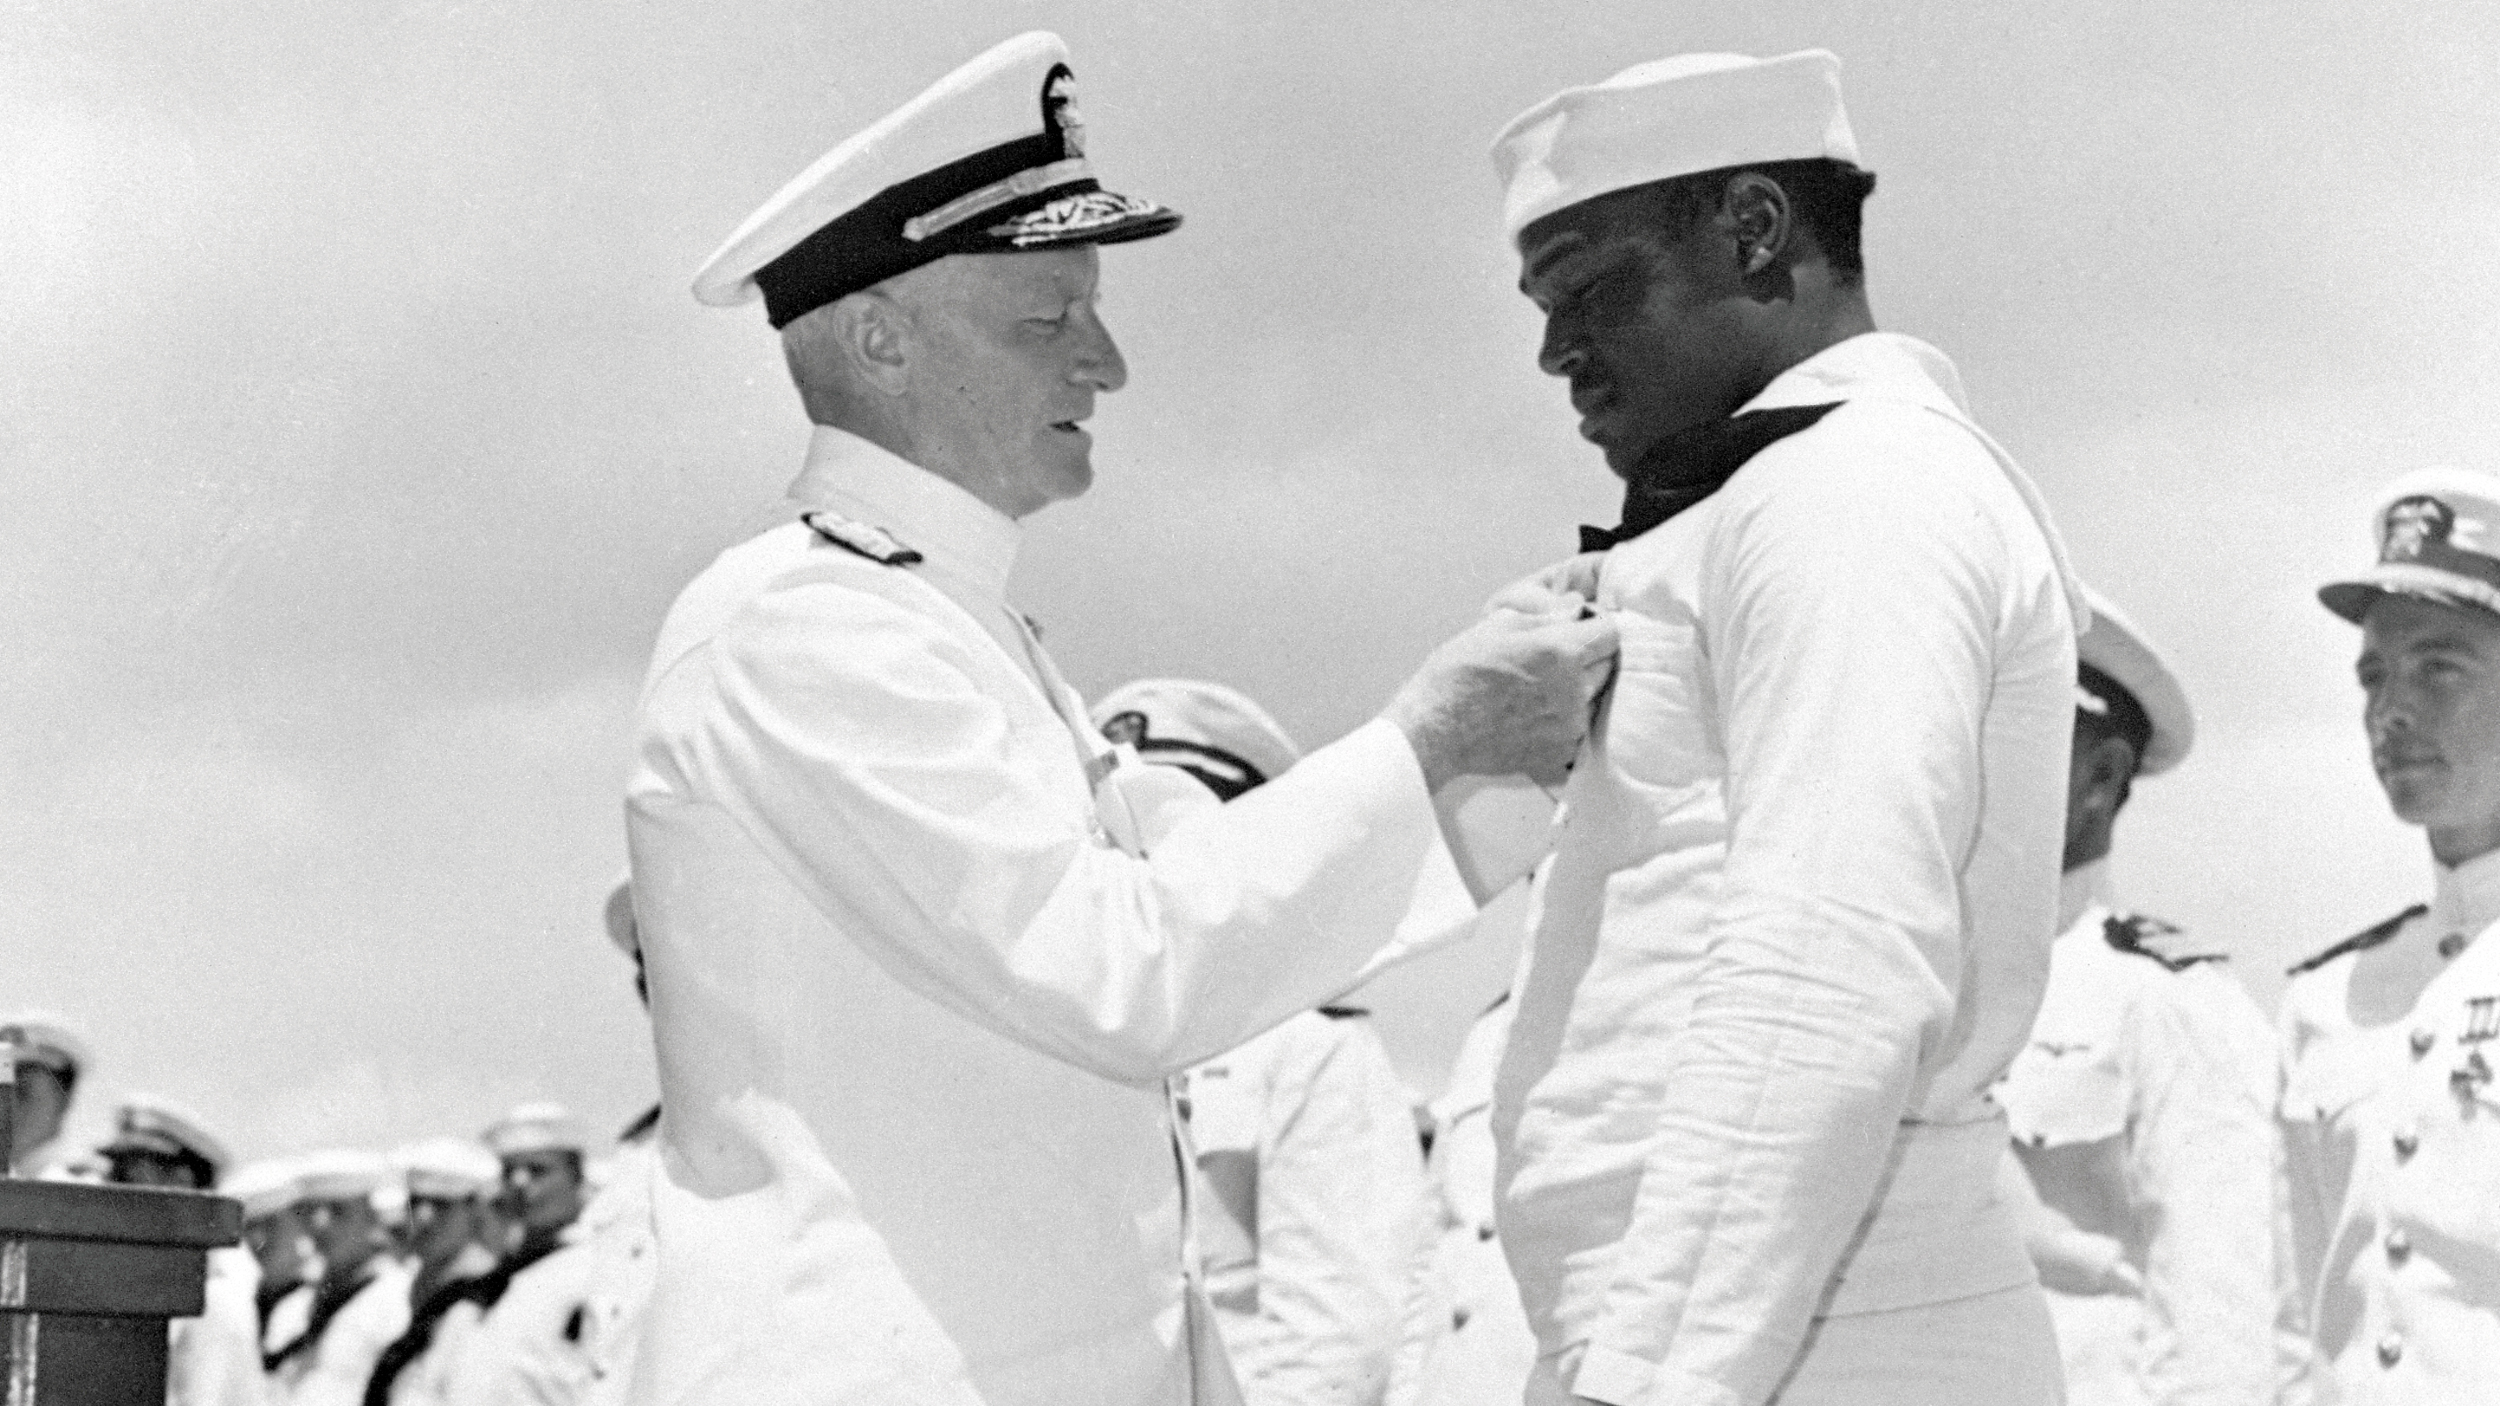 Admiral Chester W. Nimitz pins the Navy Cross on Dorie Miller, the first African-American to win the award, in ceremony aboard a warship at Pearl Harbor.